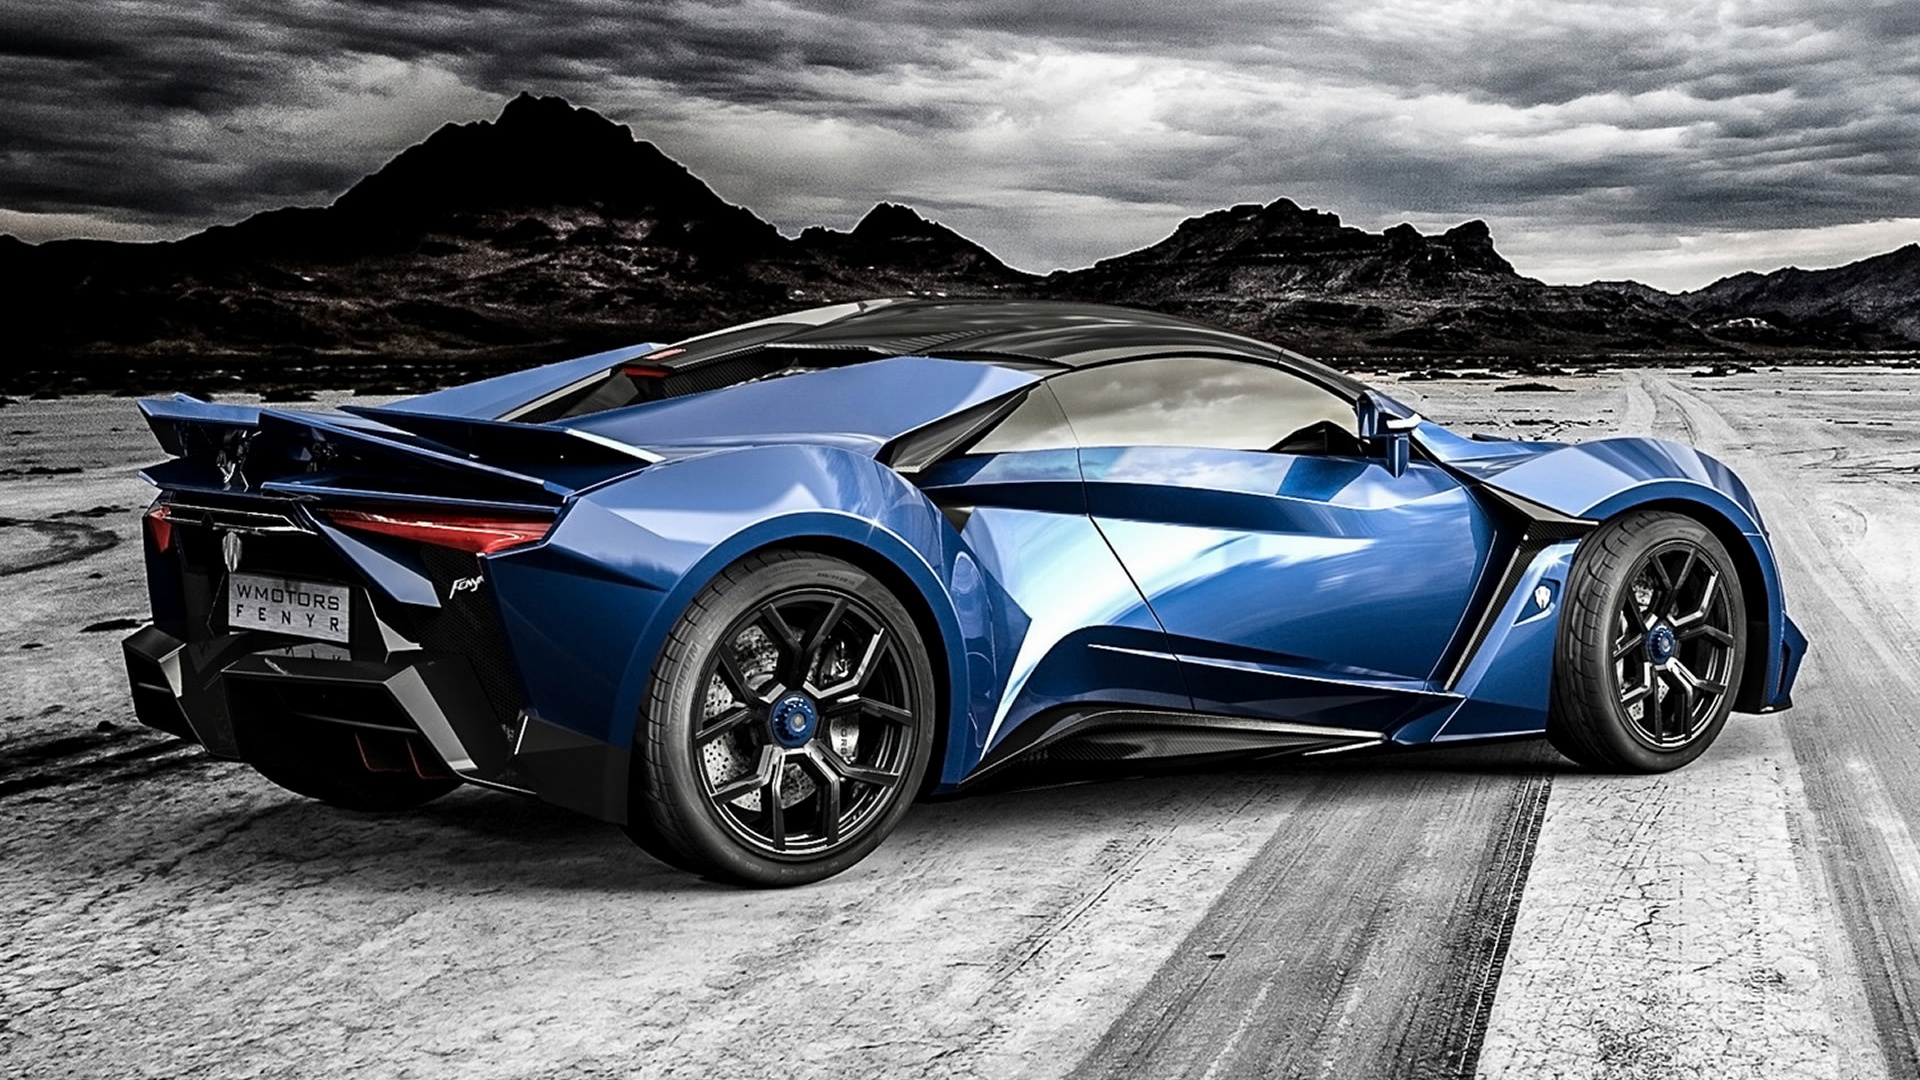 Cars Wallpapers: Fenyr SuperSport (2016) Wallpapers And HD Images